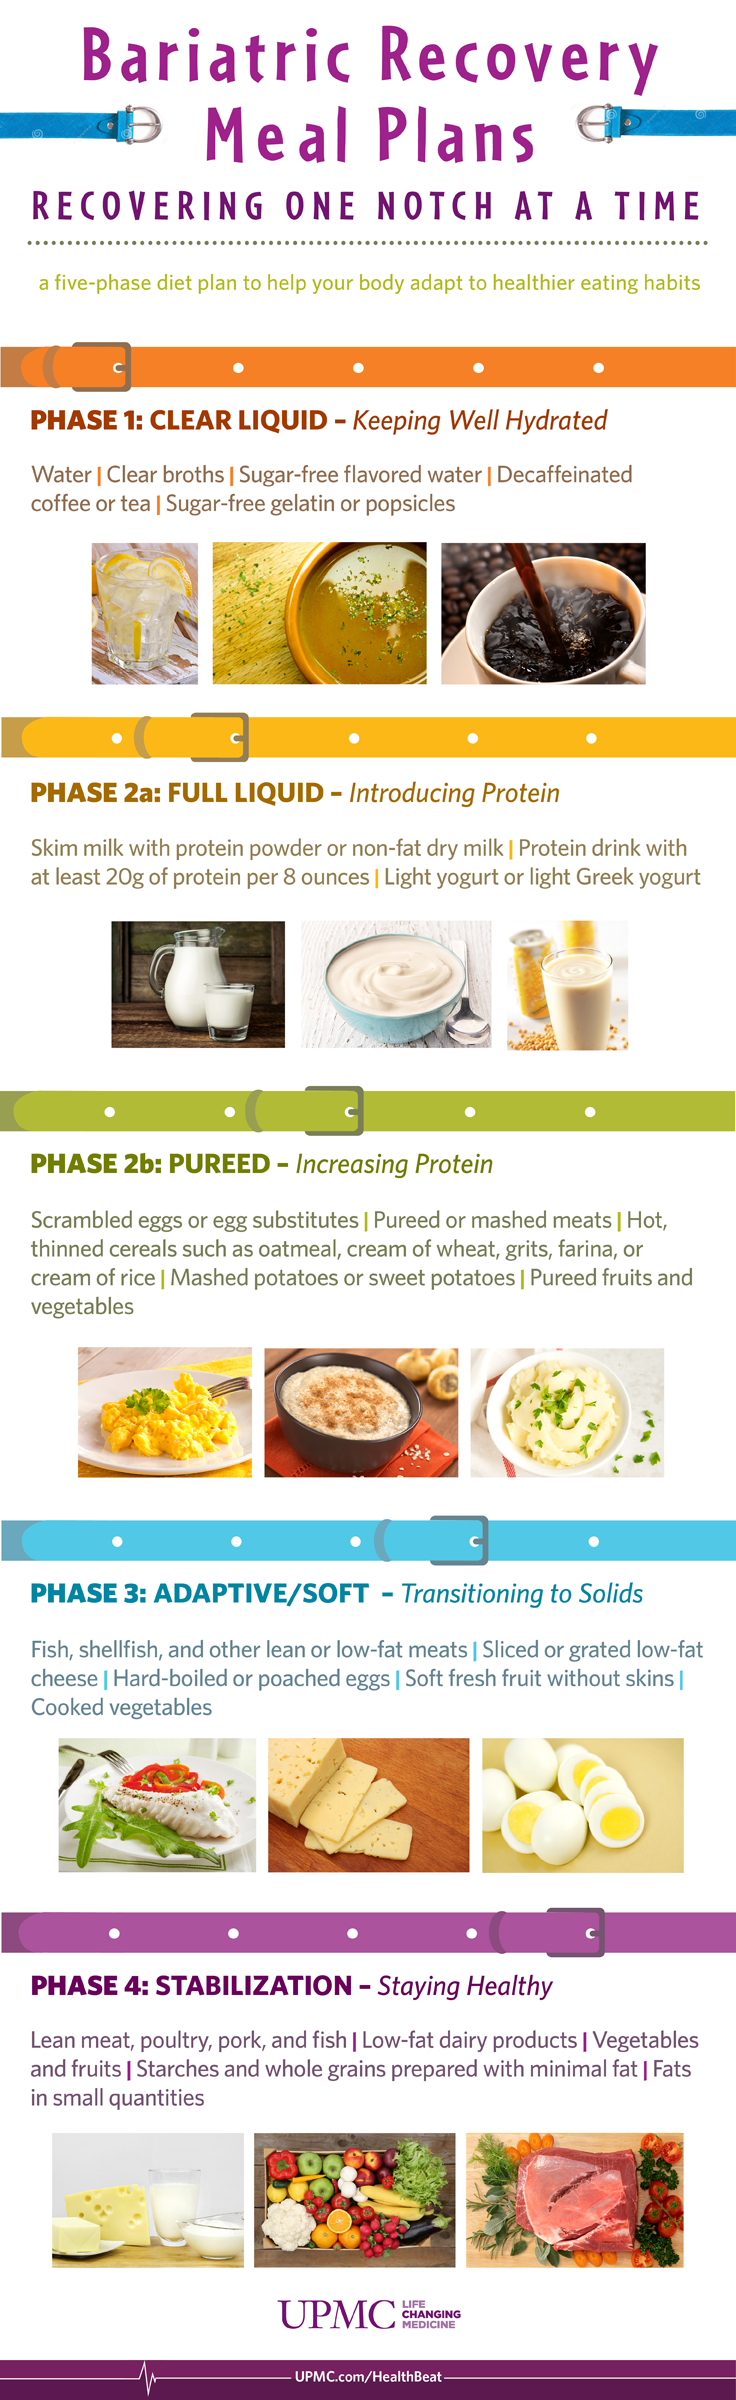 infographic: bariatric recovery meal plan | upmc healthbeat